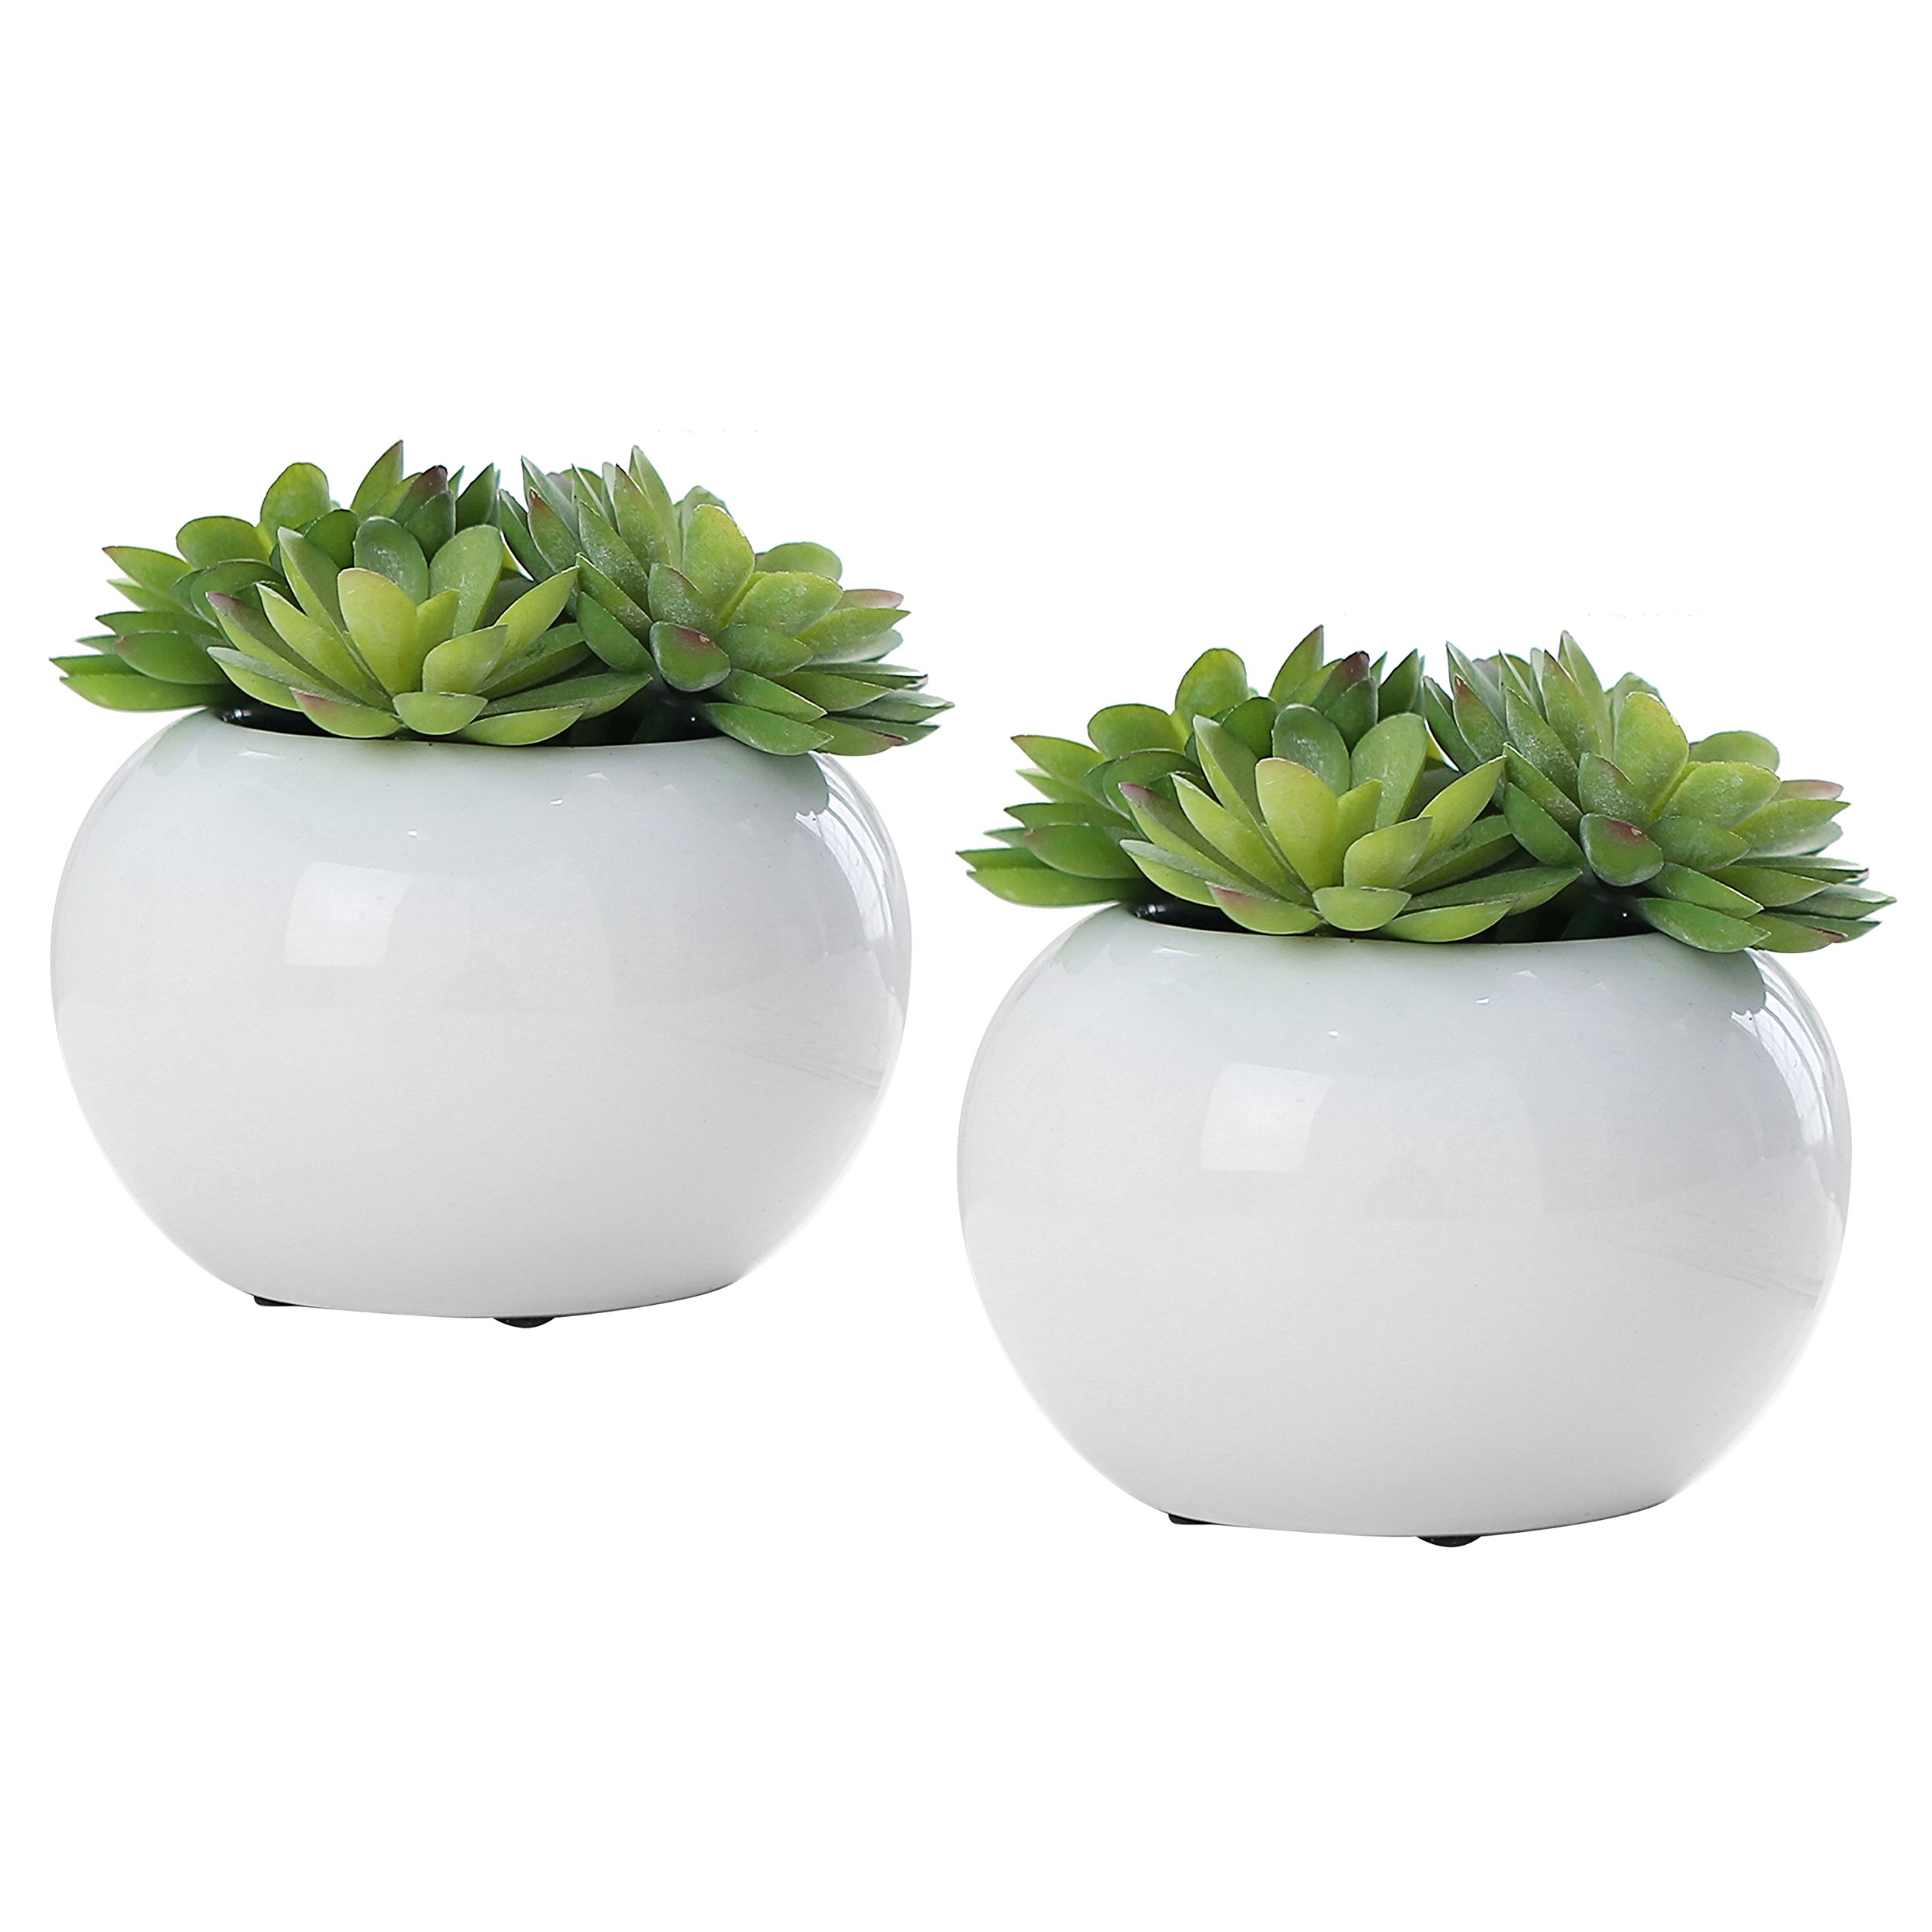 Set of 2 Modern Potted Green Artificial Succulent Plants in Round Glazed White Ceramic Pots by MyGift